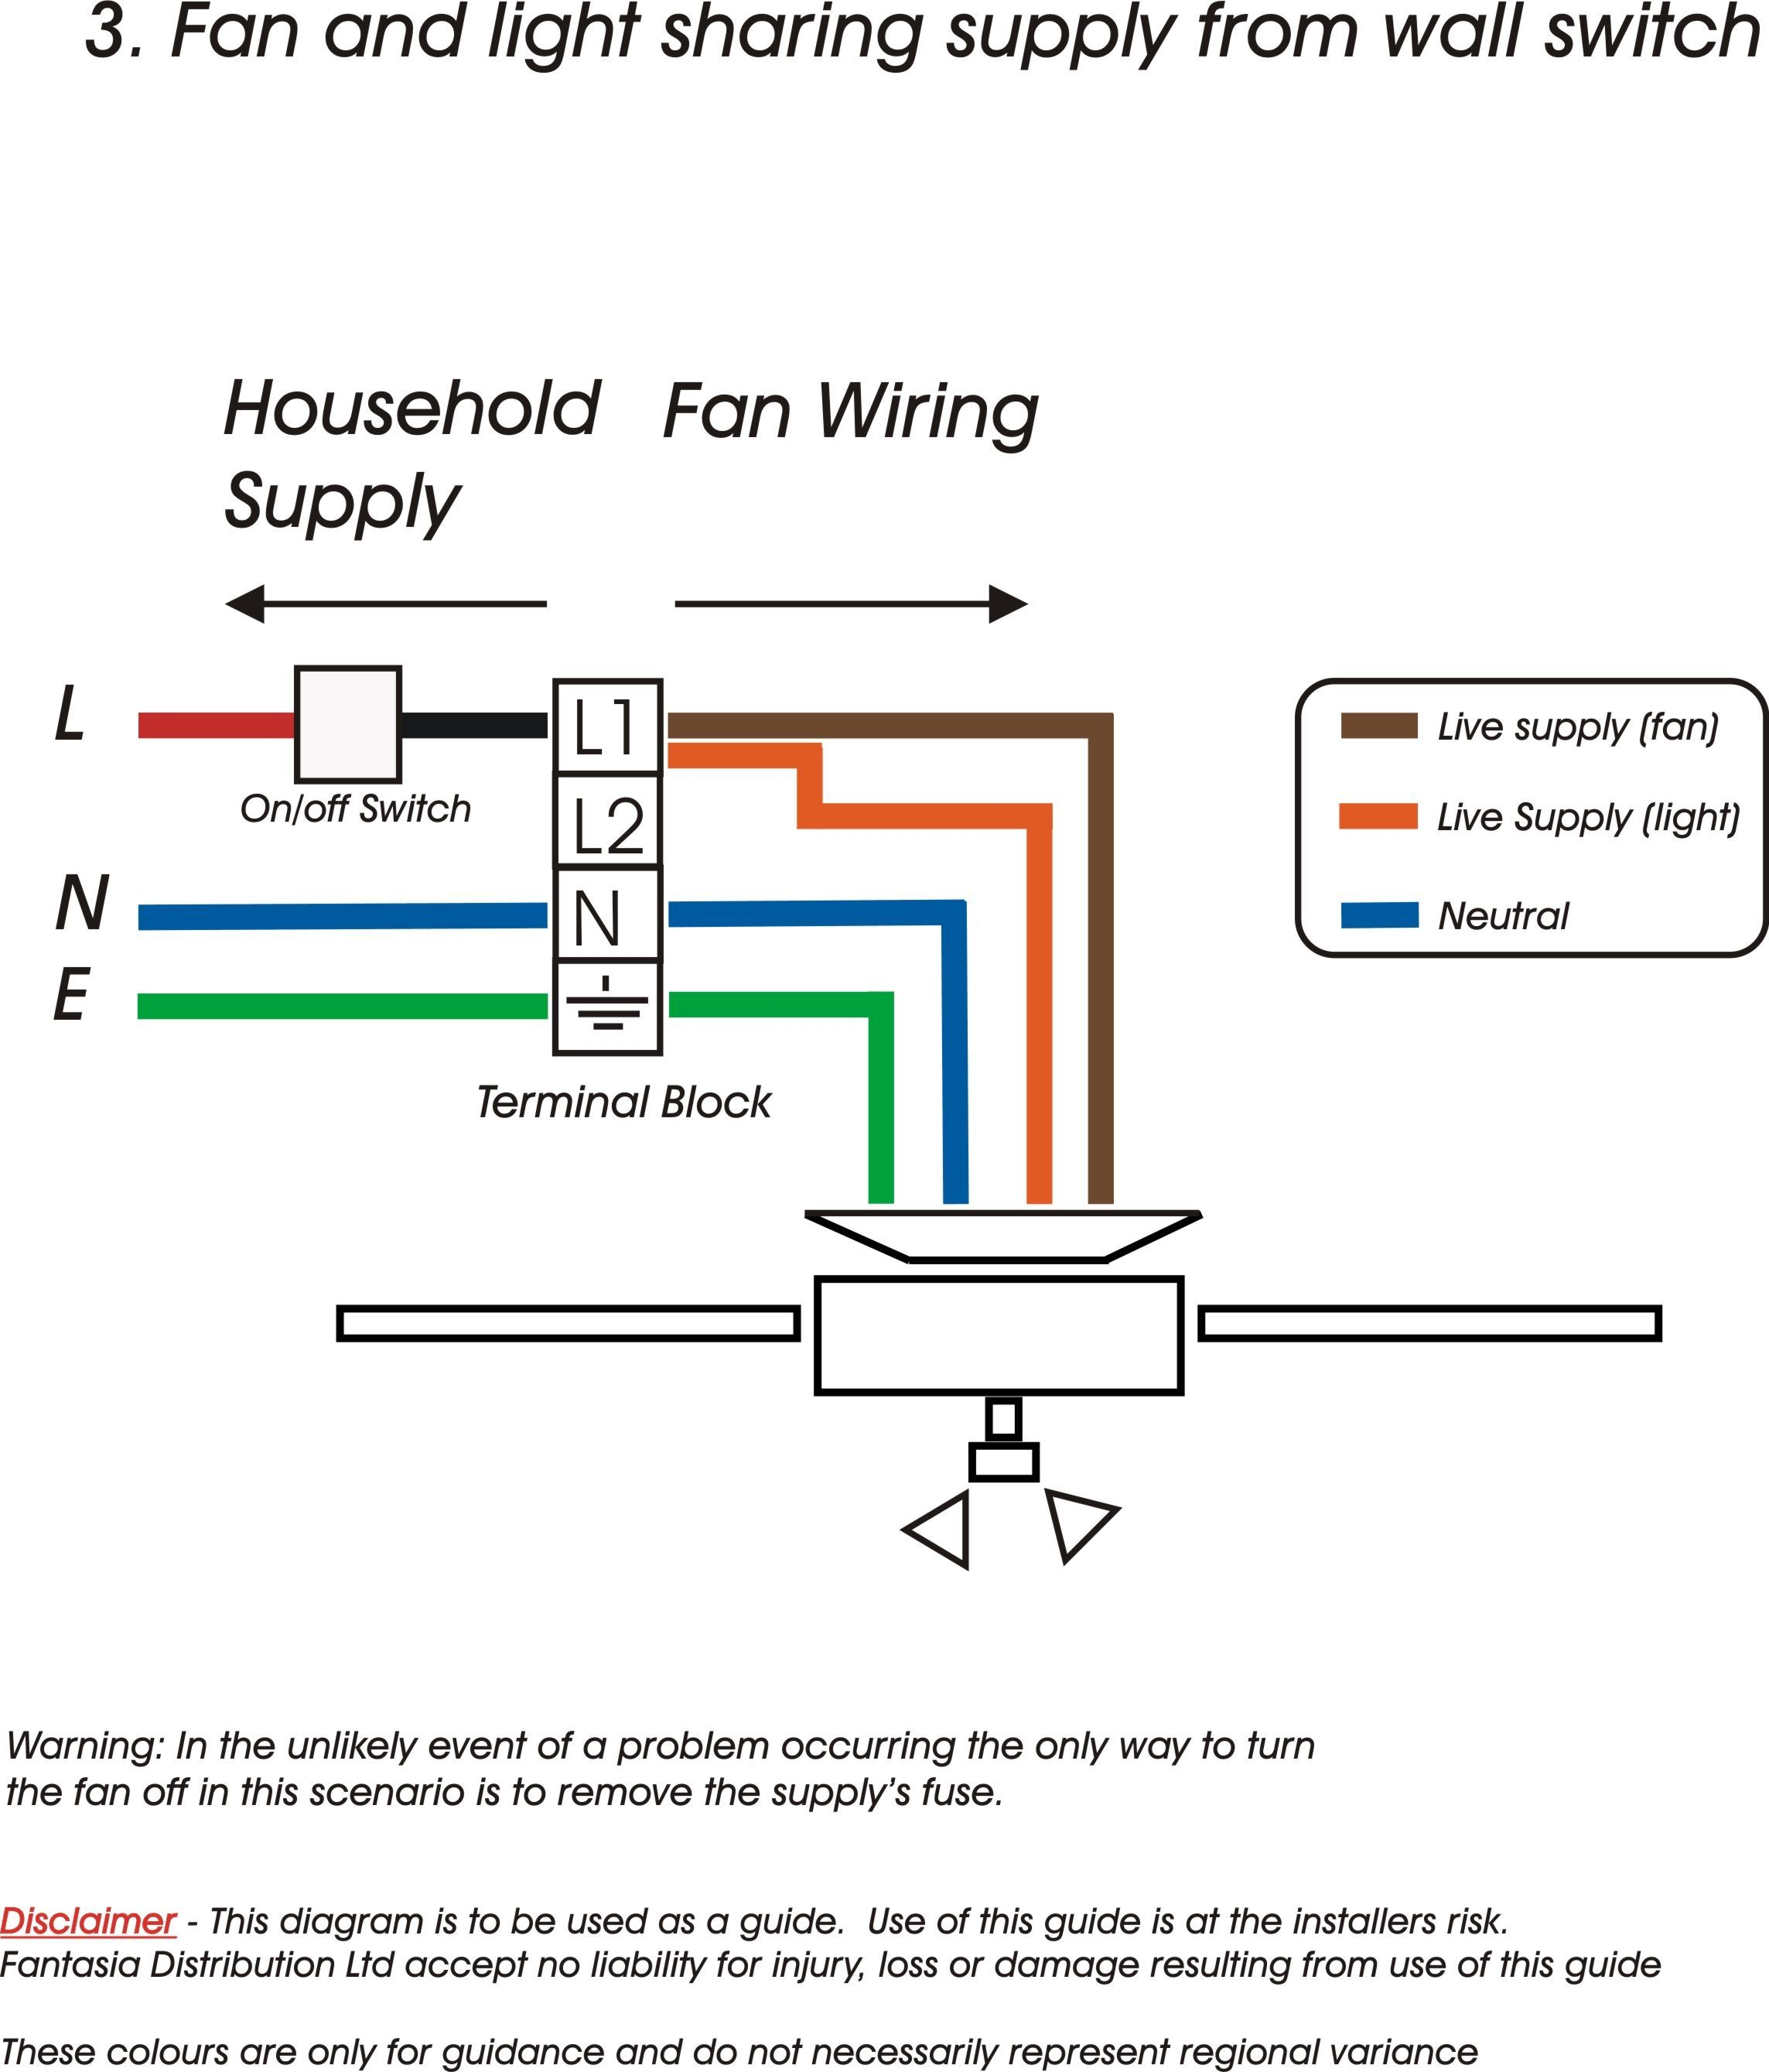 a6e72fabacaaa74231f750a53a3d3cb0 ceiling fan wall switch wiring diagram ladysro info master flow attic fan wiring diagram at webbmarketing.co